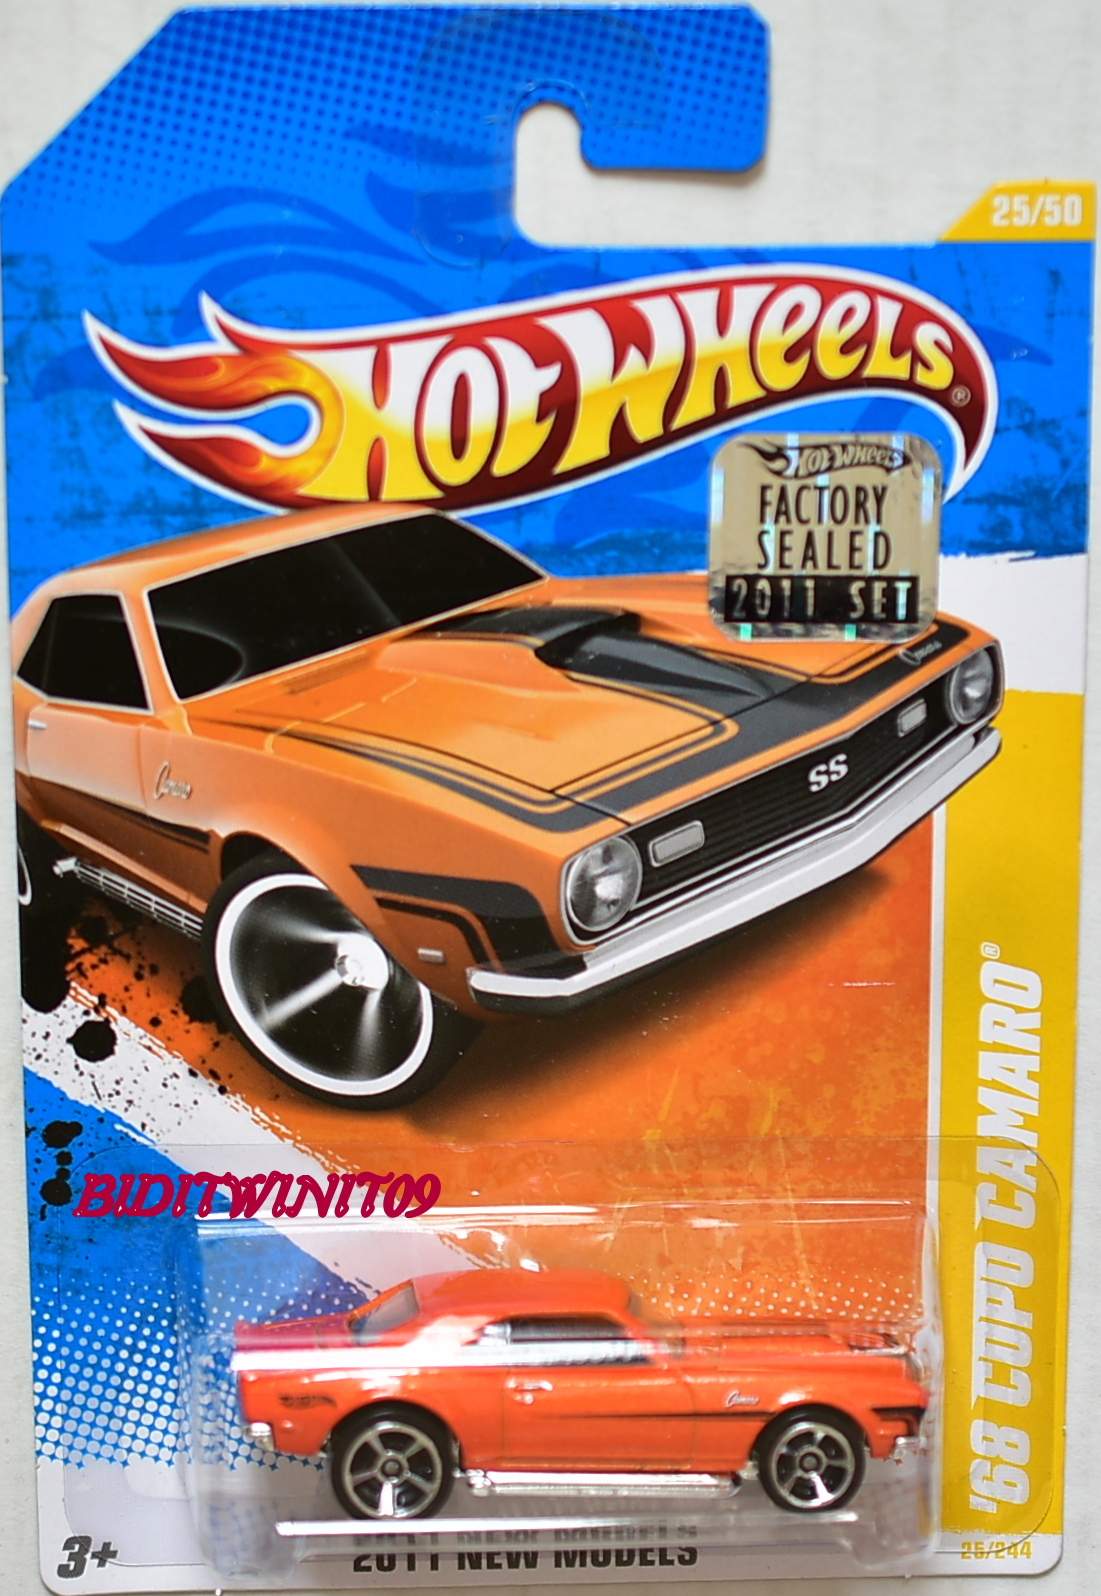 HOT WHEELS 2011 NEW MODELS '68 COPO CAMARO #25/50 ORANGE FACTORY SEALED E+